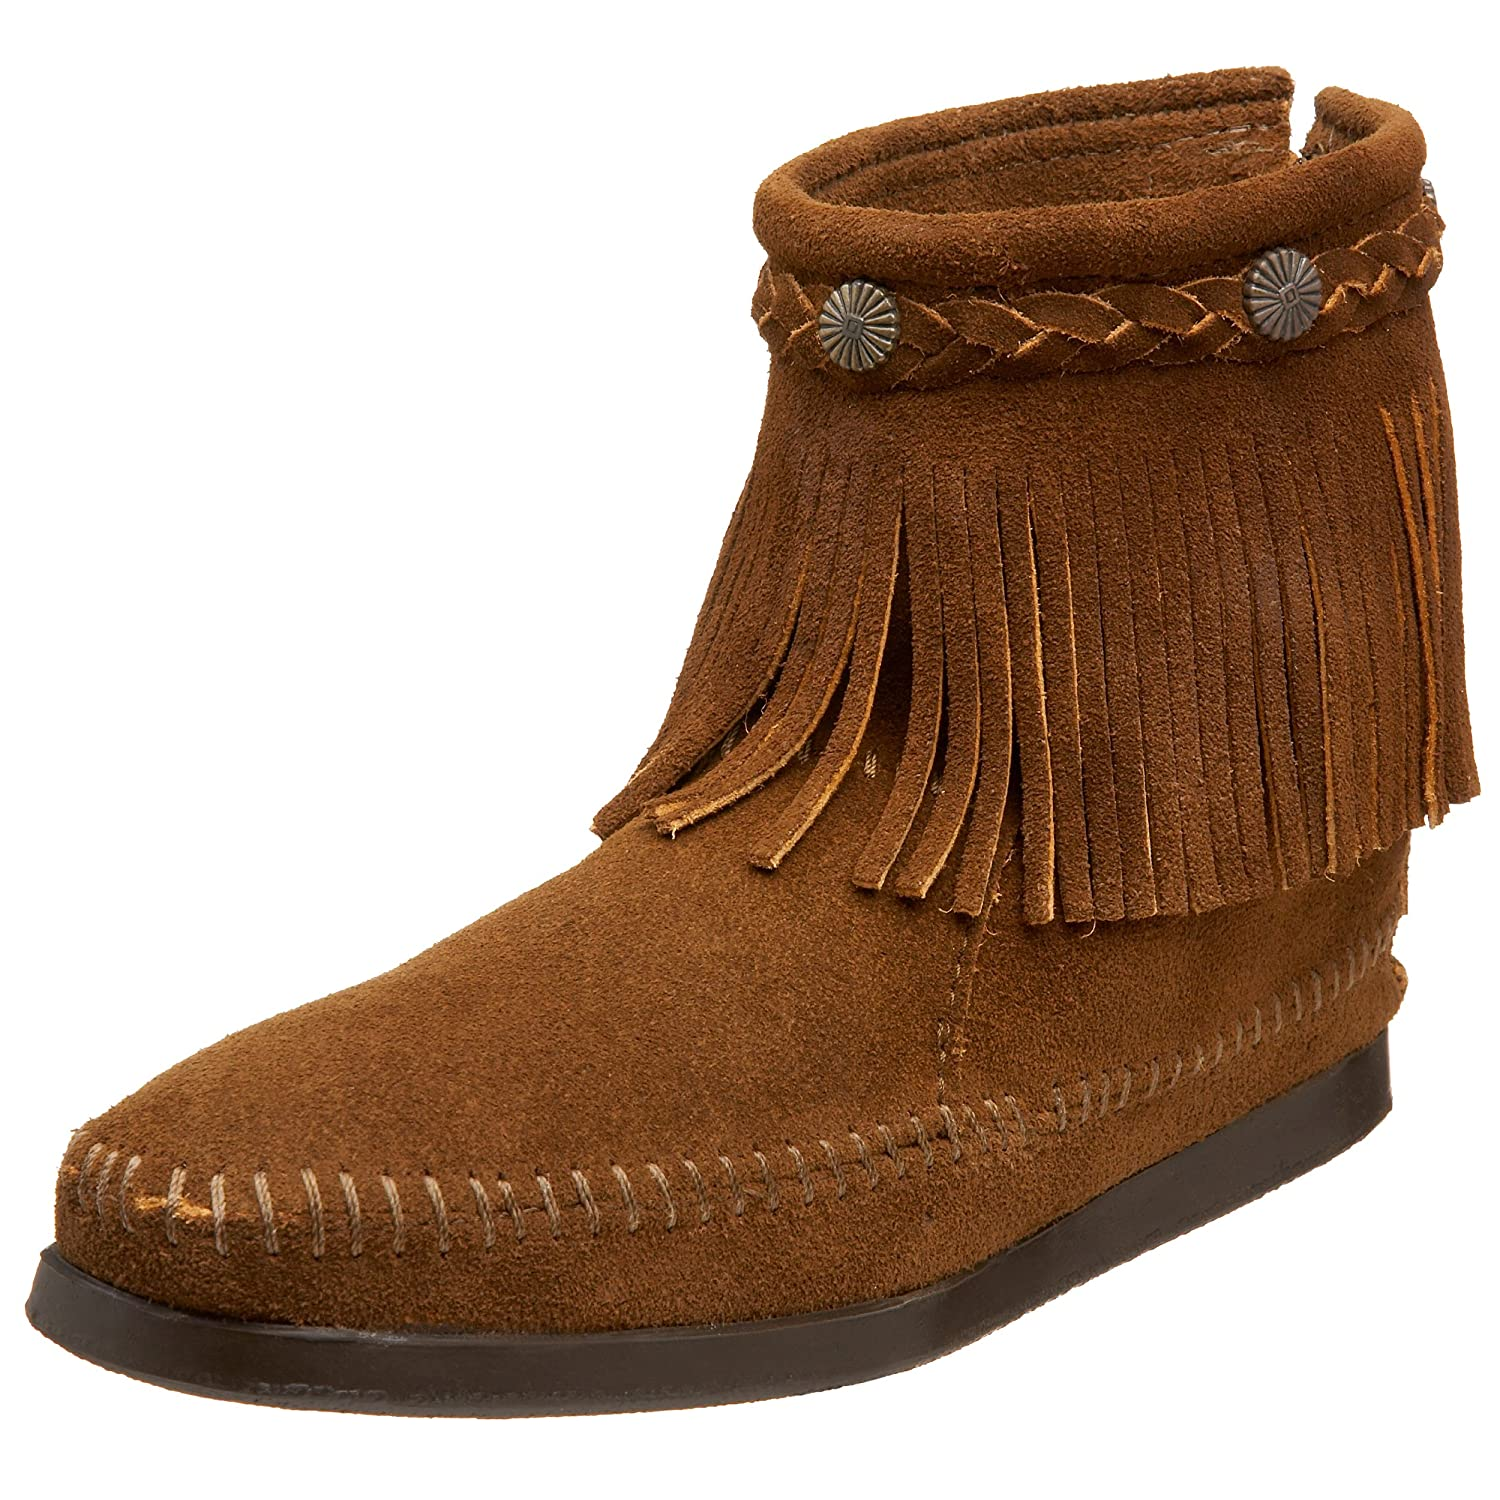 Minnetonka Women's 299 Back-Zip Boot B001ANLN4S 10 B(M) US|Dusty Brown